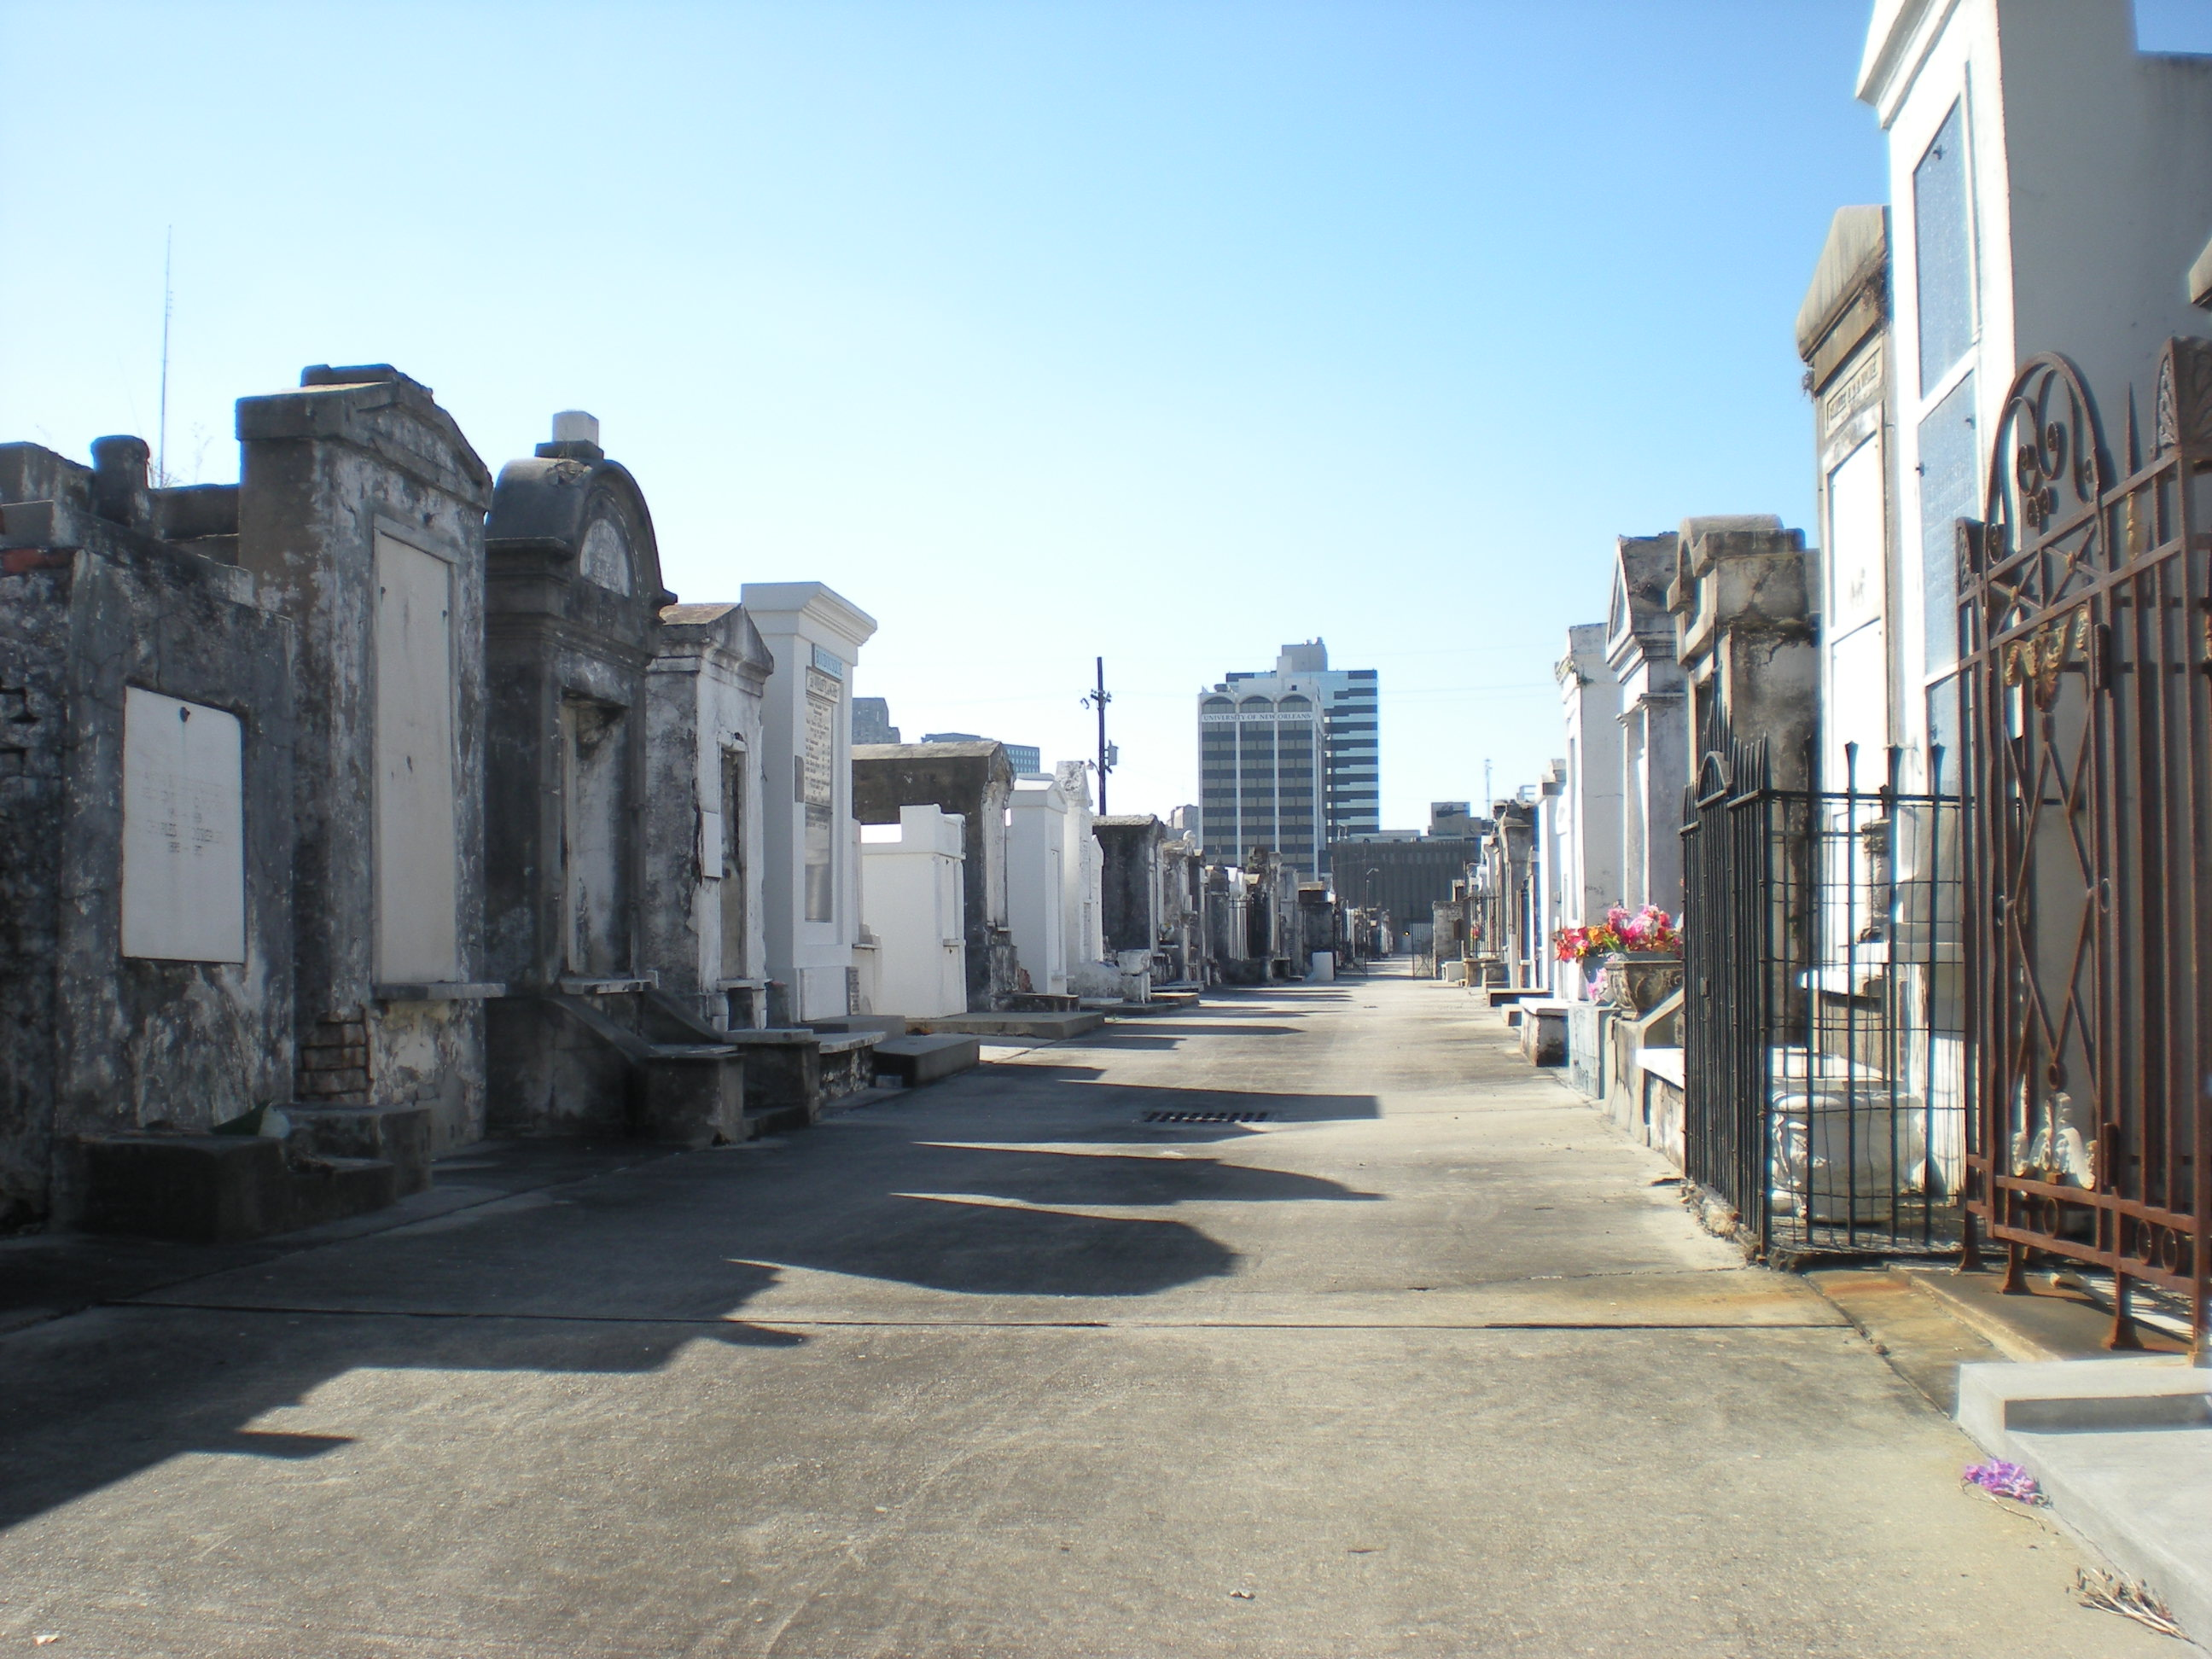 New Orleans Cemetery, Bones, Cemetery, Dead, Graves, HQ Photo